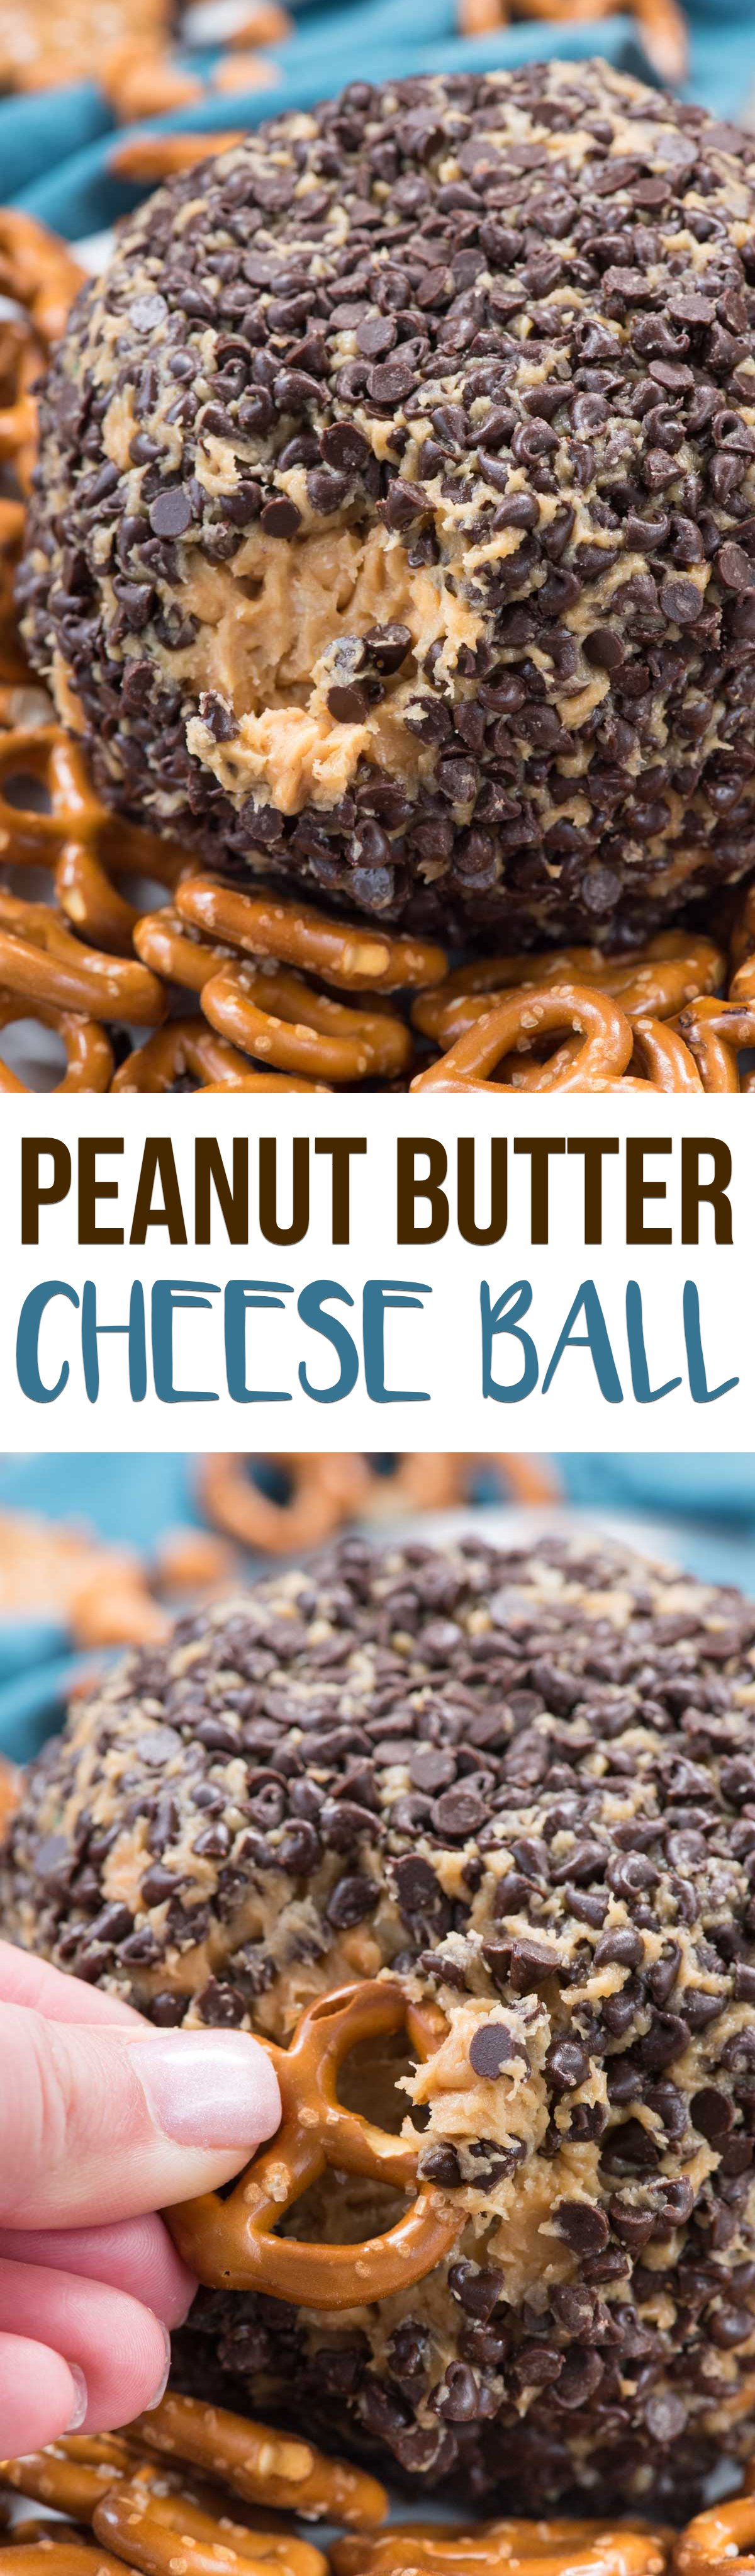 Peanut Butter Cheese Ball Dip is an EASY dessert dip recipe for a party! Peanut butter, cream cheese, butter, sugar and LOTS of chocolate make this the perfect addicting dip recipe for any occasion.